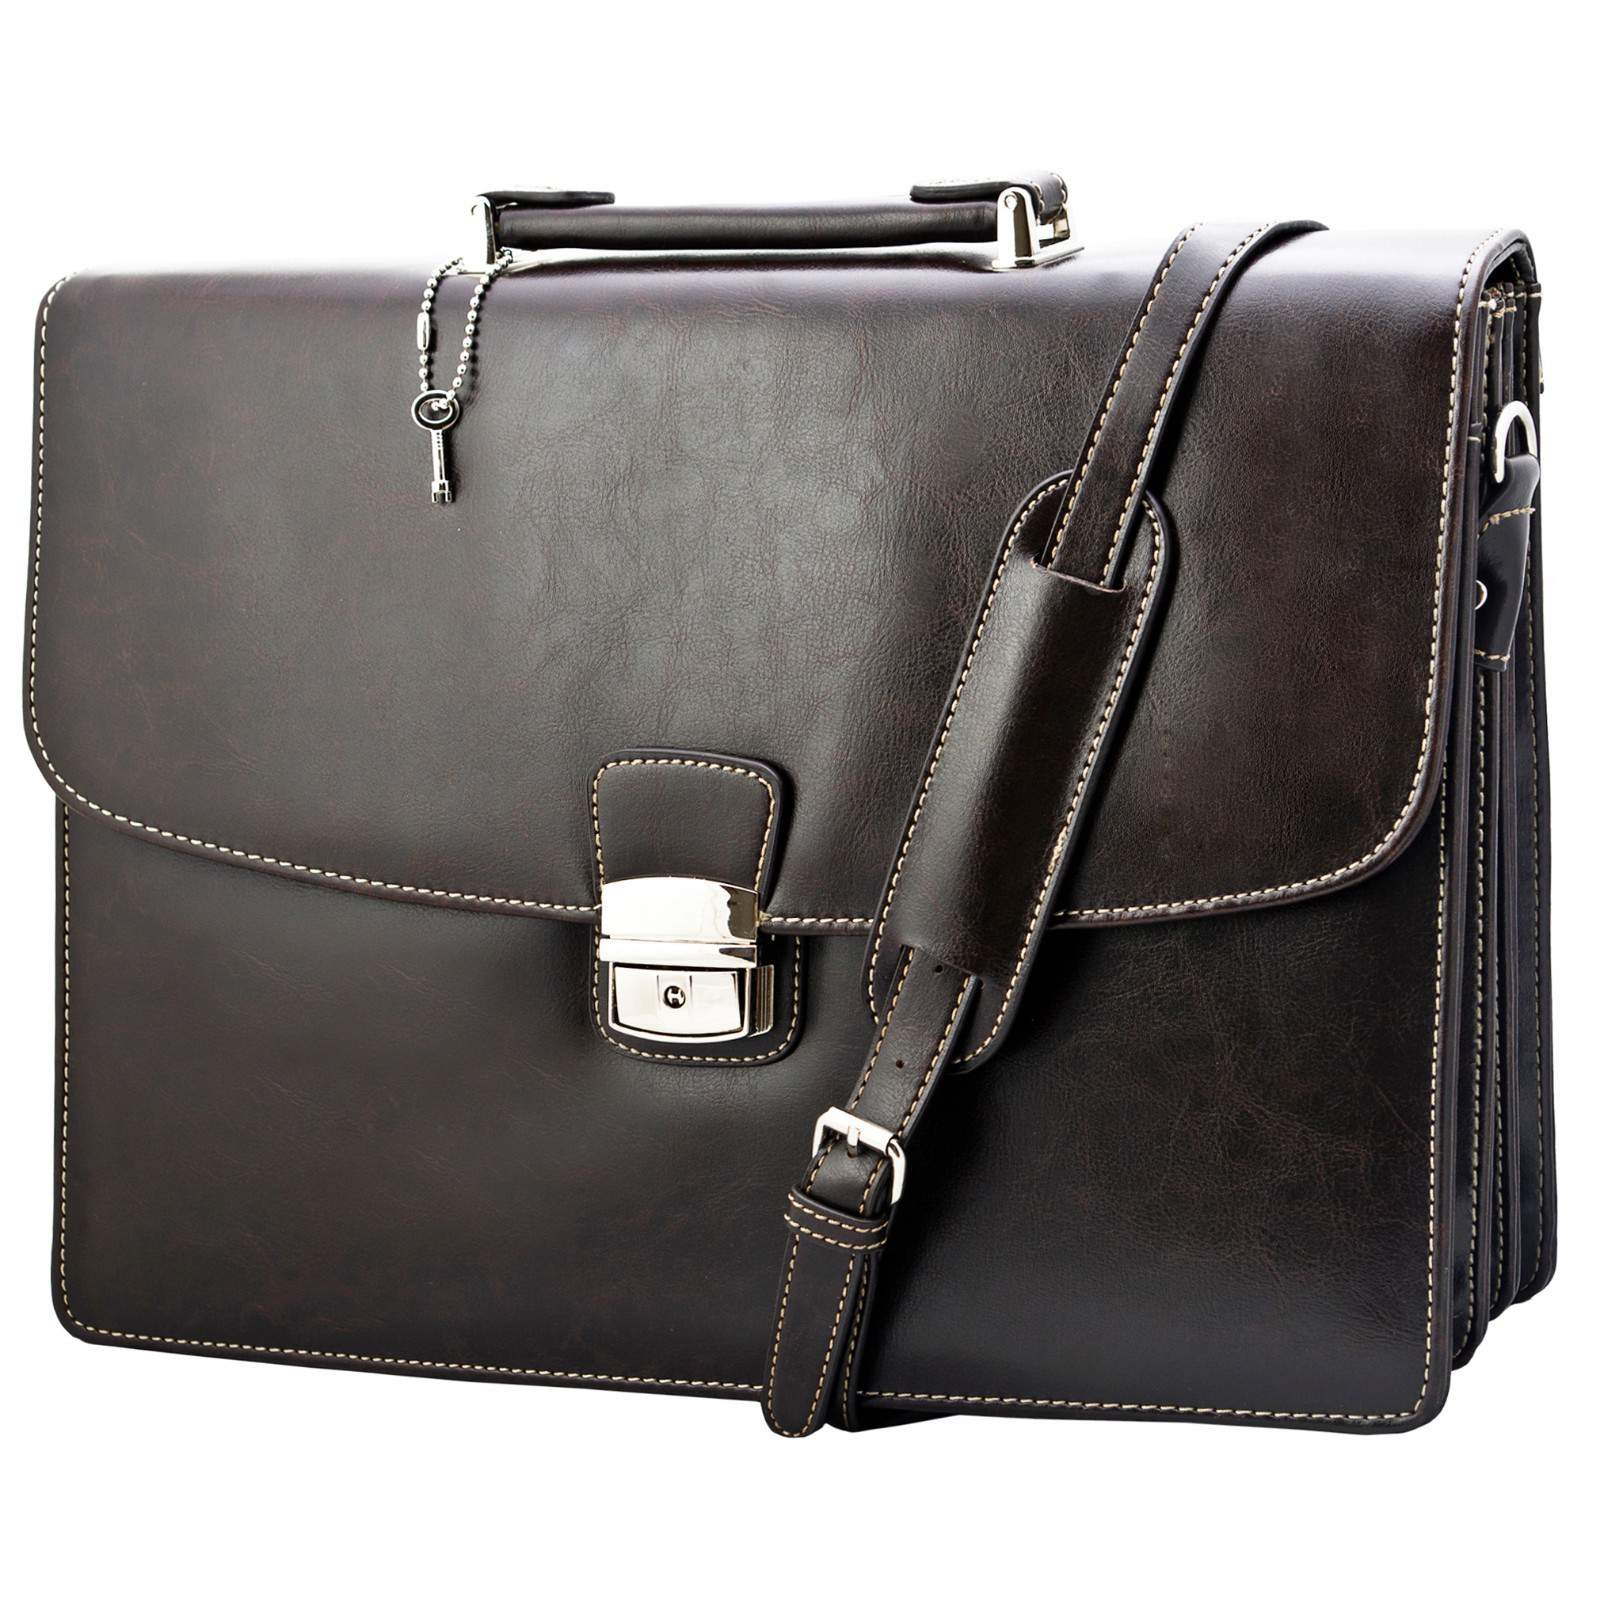 Classic Vintage Professional Men s Leather Carrying Briefcase Messenger Bag  NEW on Luulla 022d0e74ed717